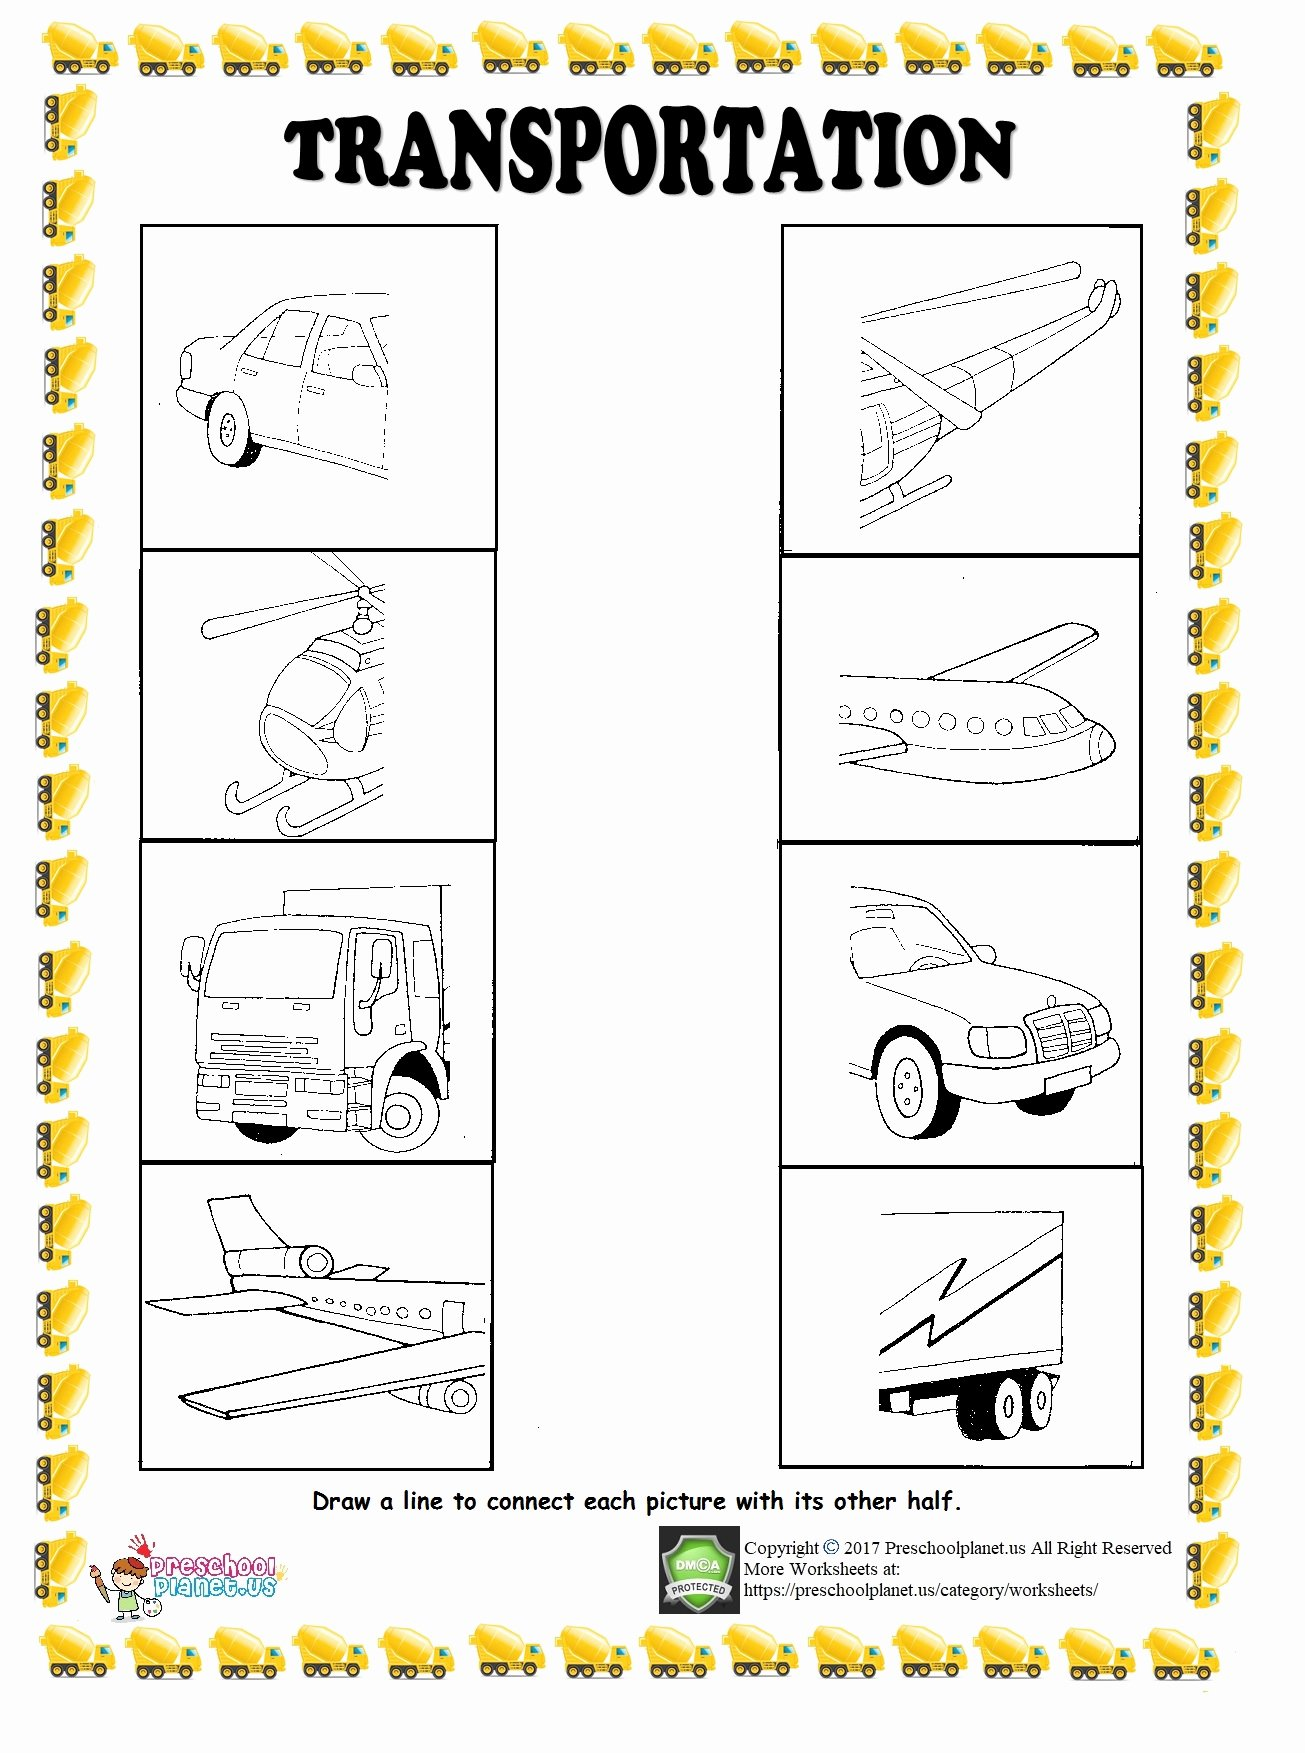 Transportation Worksheets for Preschoolers Kids Find Half Of Given Transportation Worksheet – Preschoolplanet